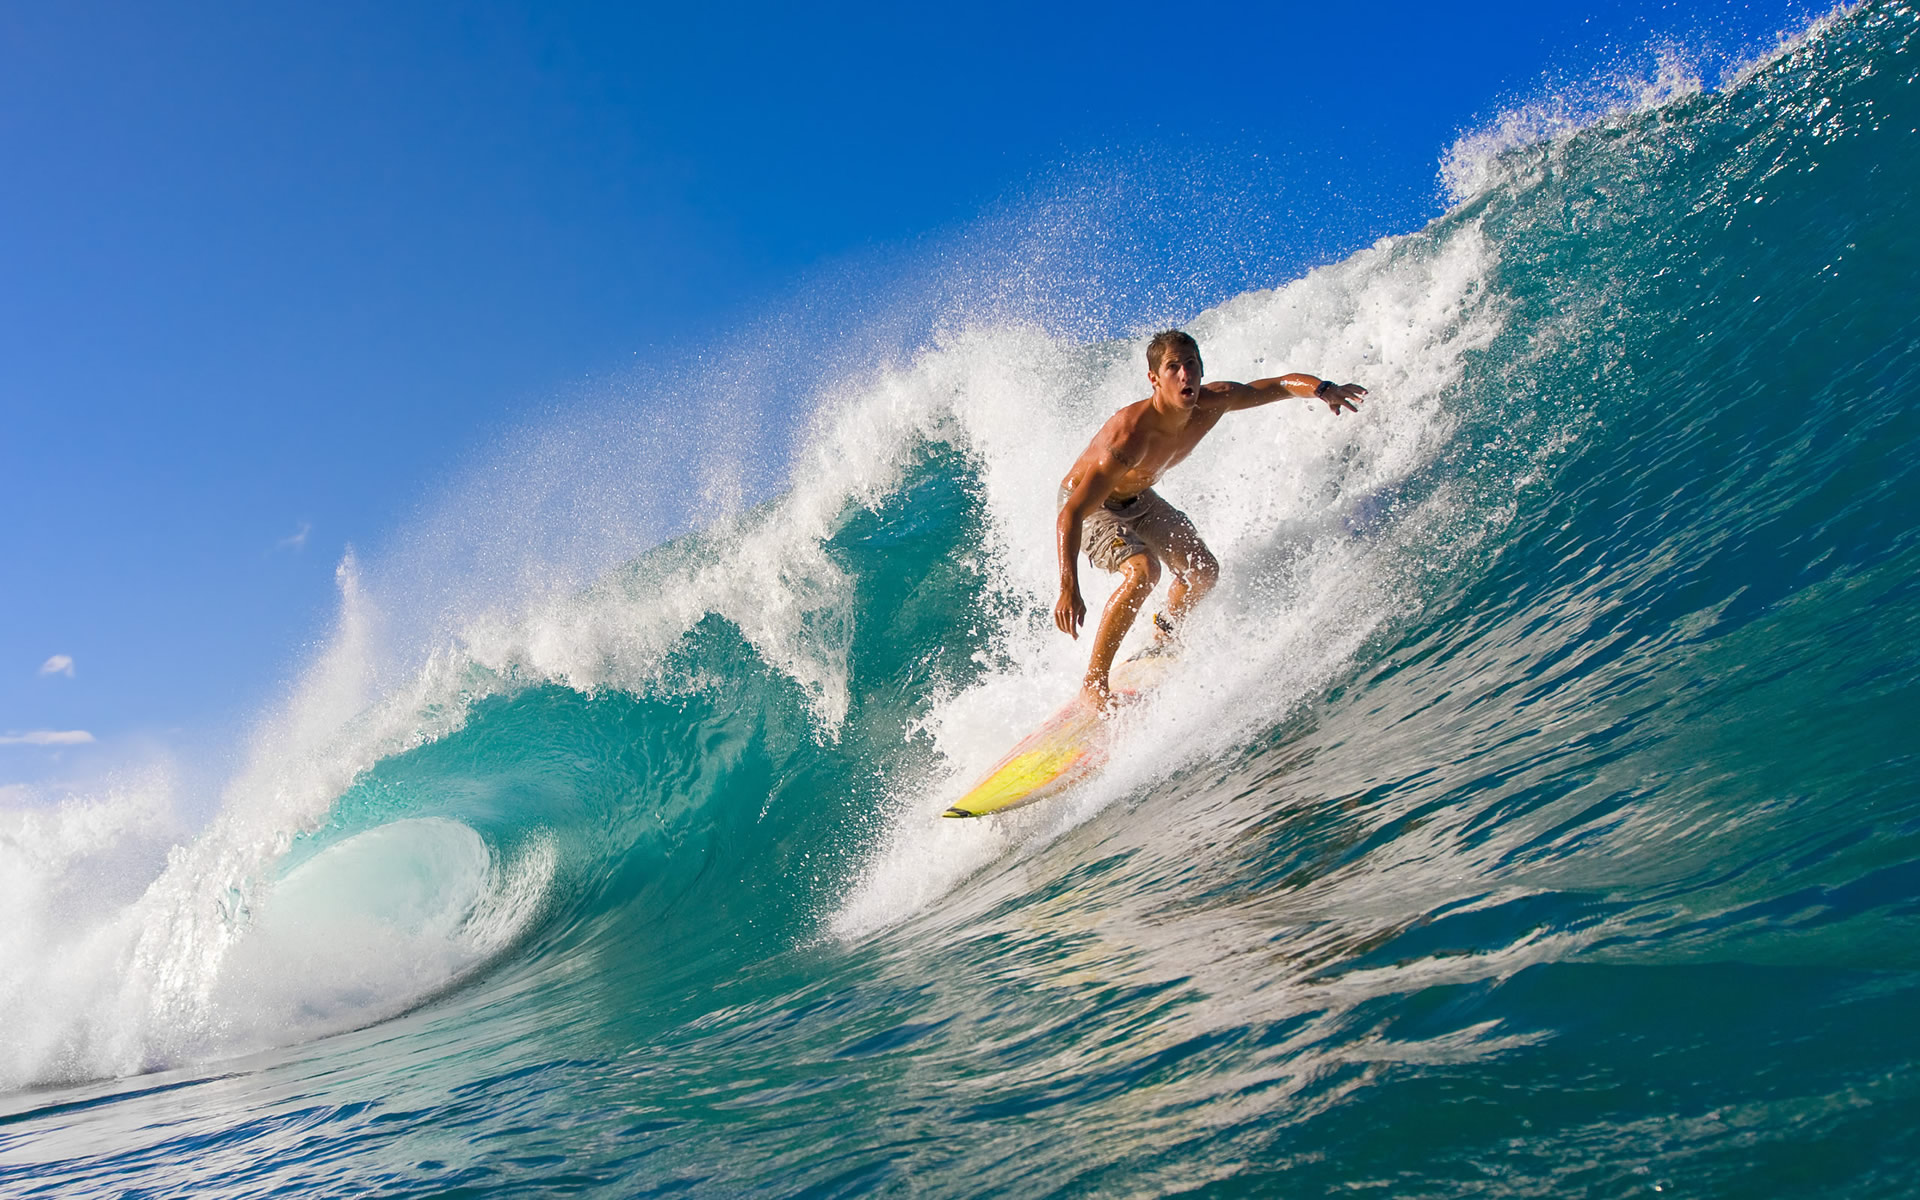 Surfing Summer Wallpaper HD wallpapers   Surfing Summer Wallpaper 1920x1200